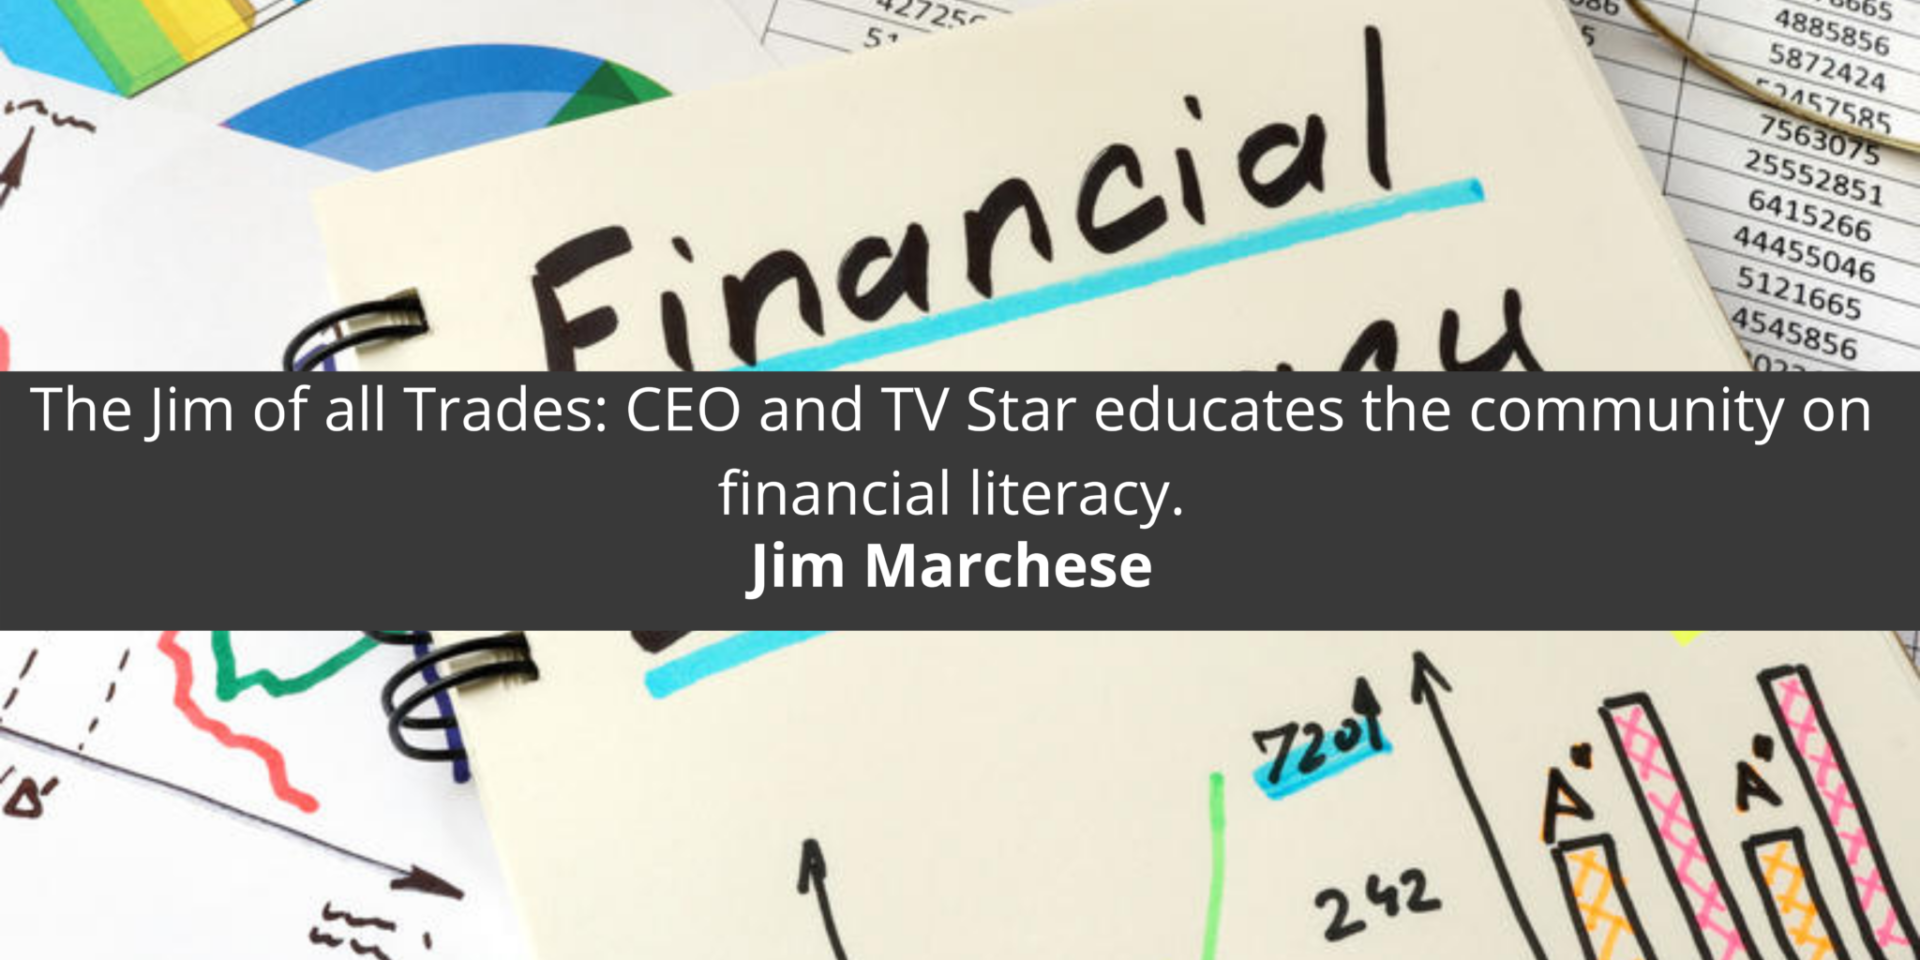 The Jim of all Trades: CEO and TV Star educates the community on financial literacy.